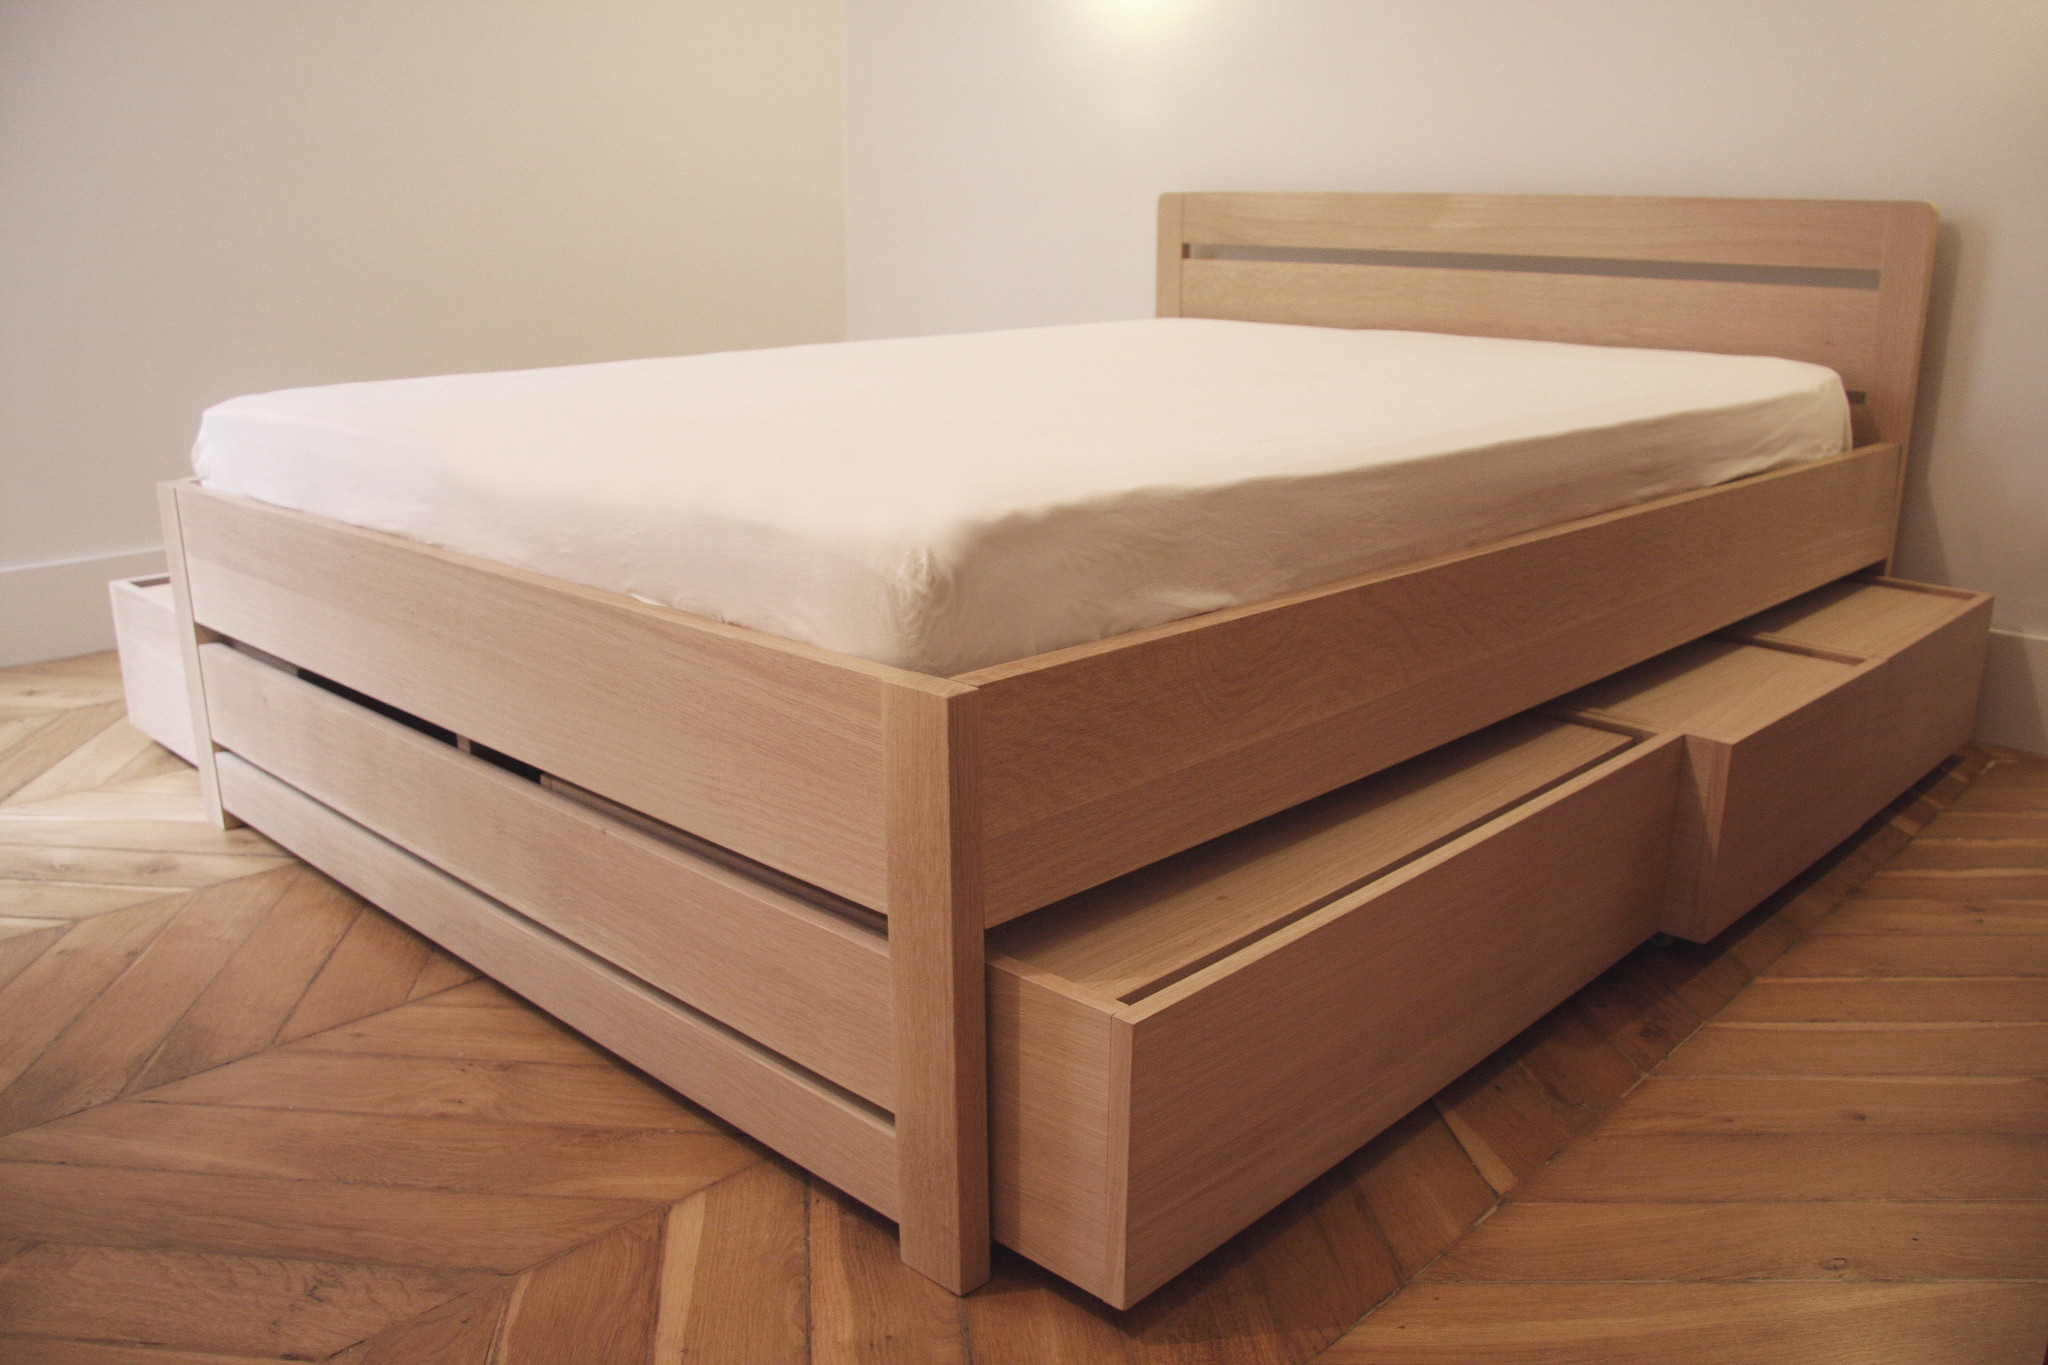 Nonjetable-Customised-Solid-Oak-Double-Bed-Lifetime-160x200-01